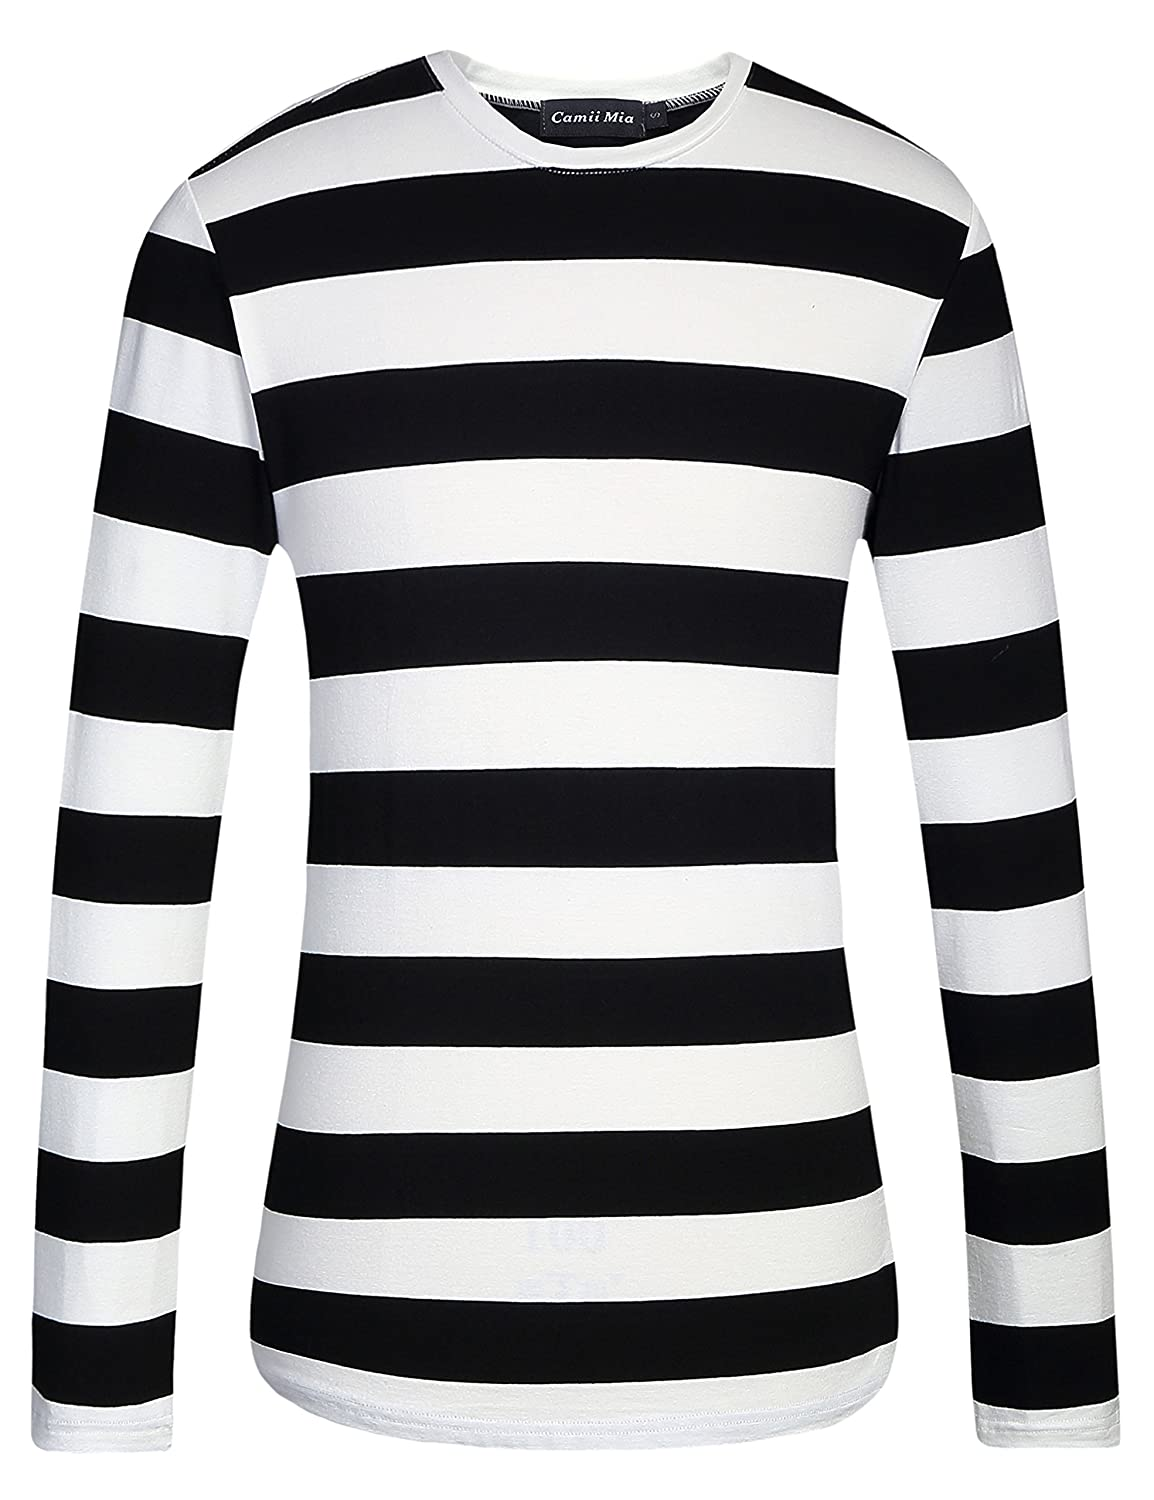 Men's Long Sleeve Black Wide Striped Shirts